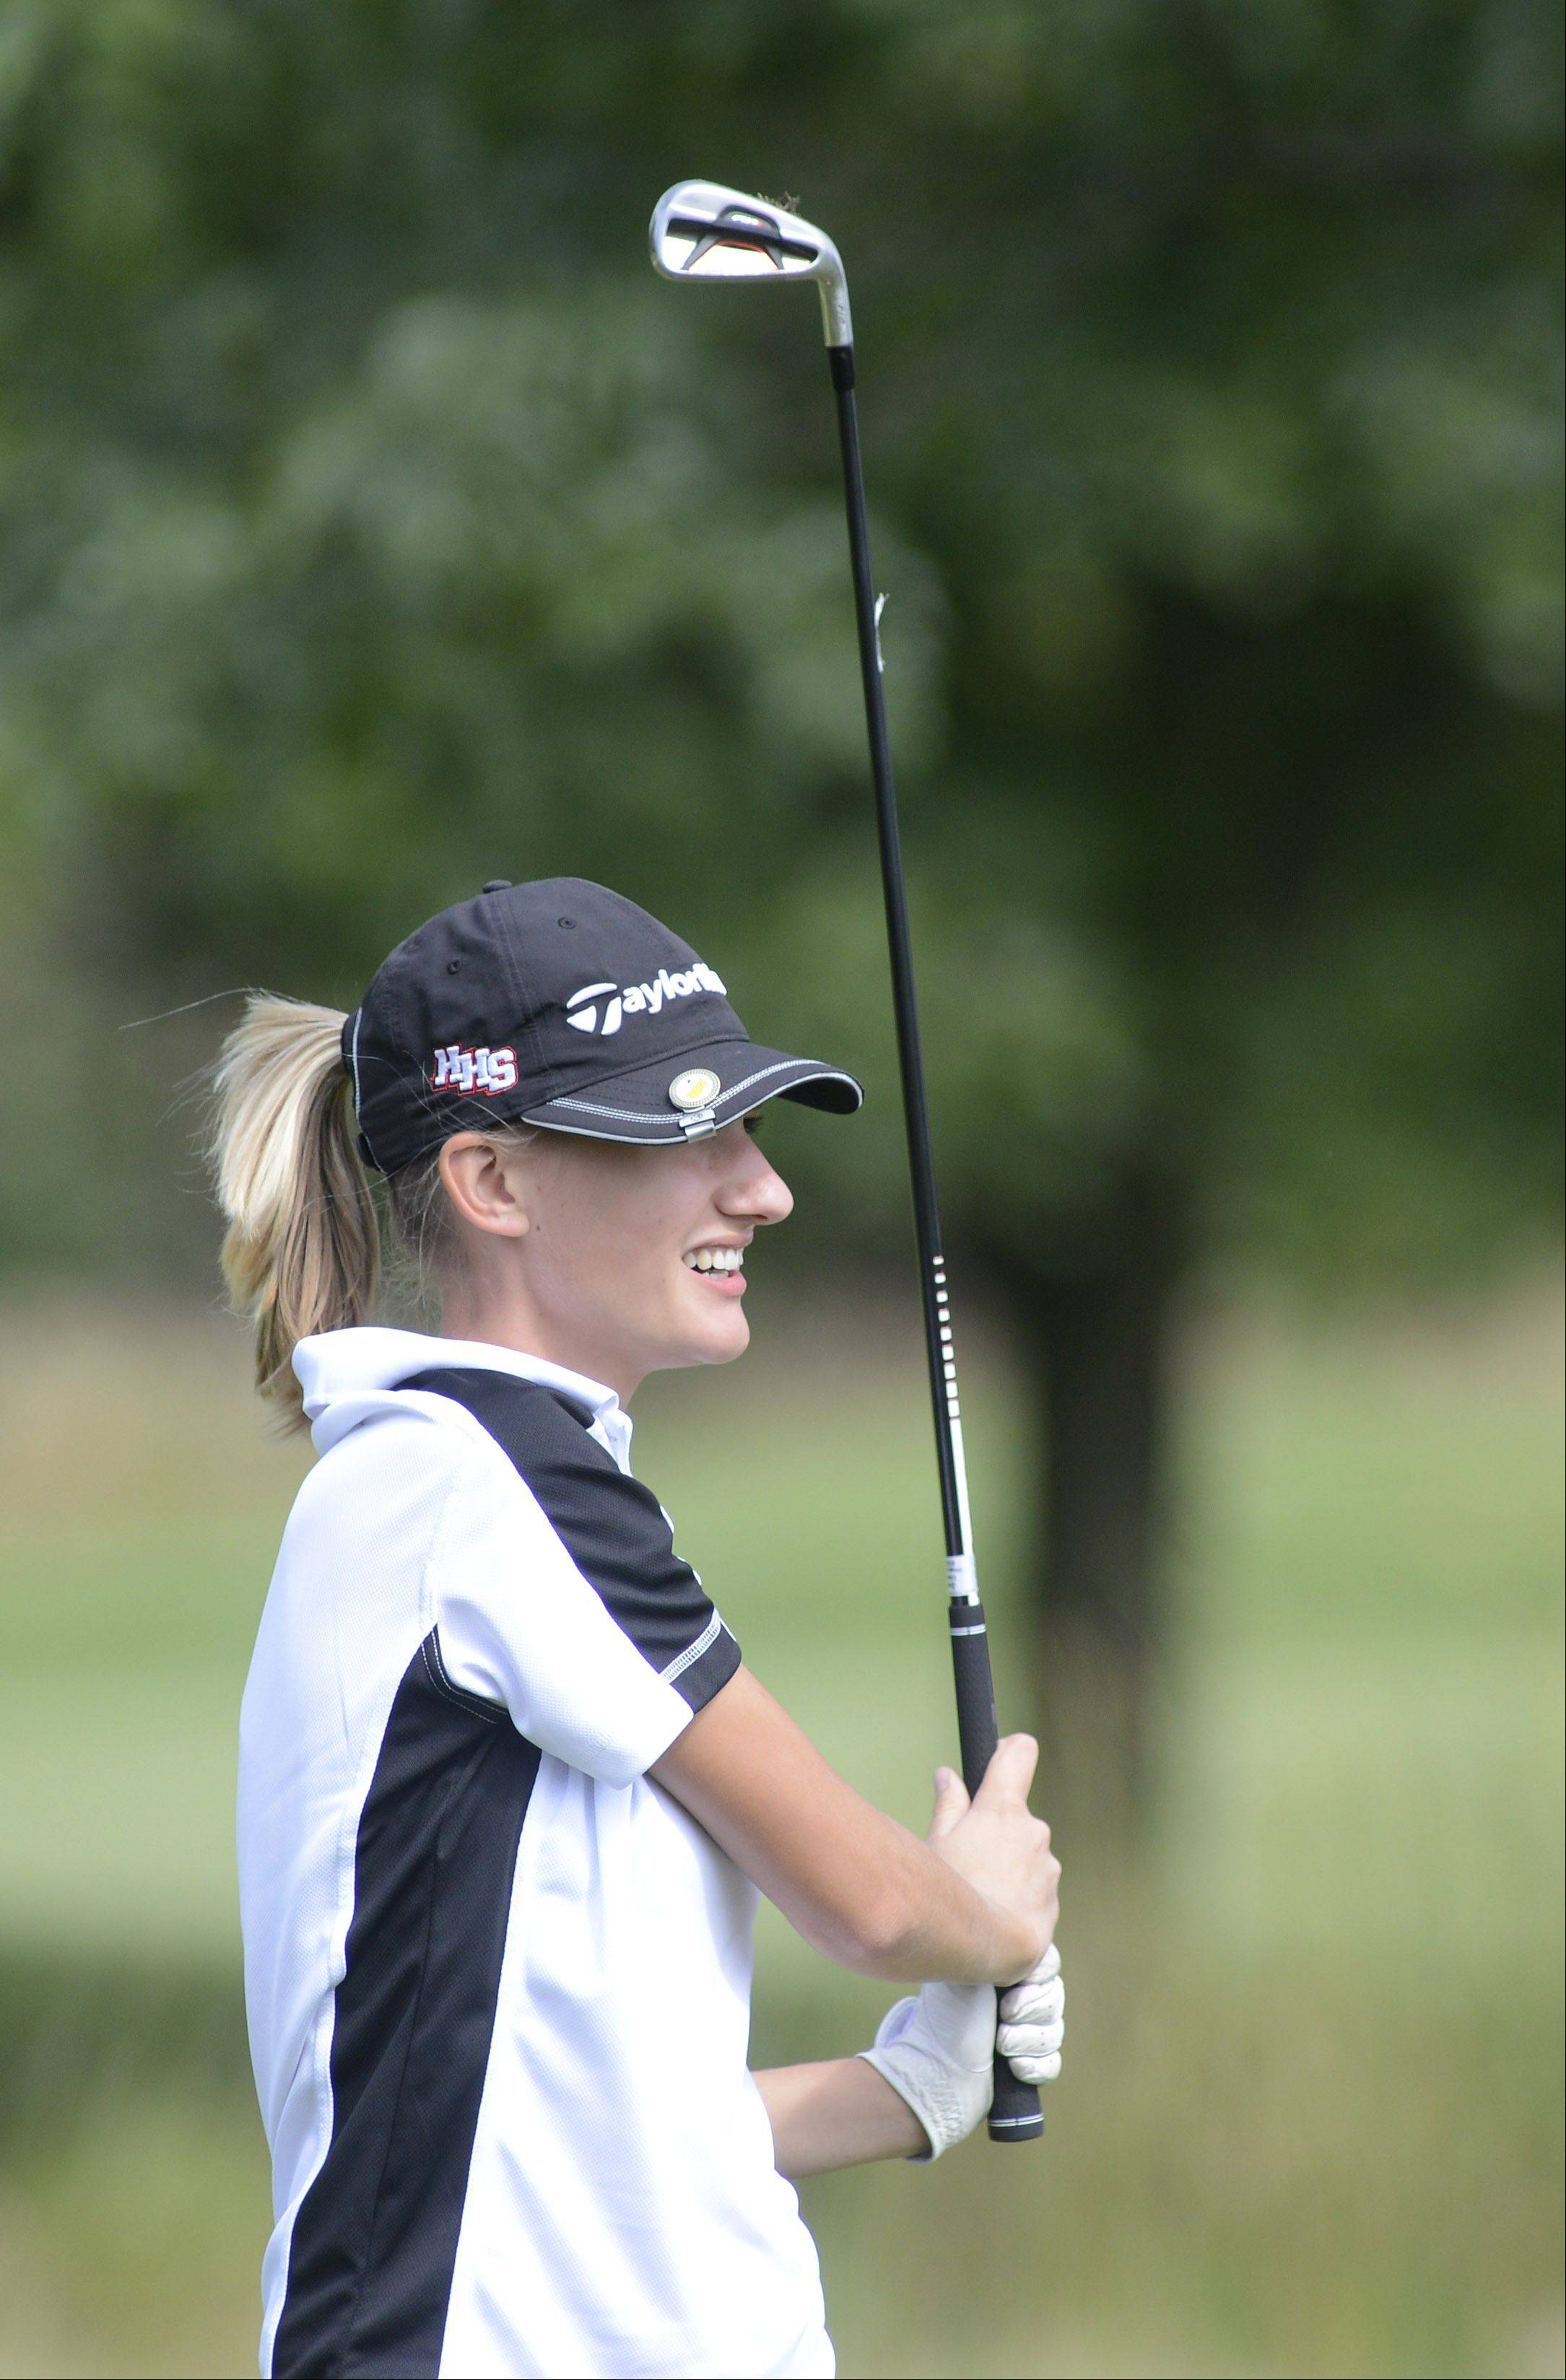 Huntley's Zoe Dowell tees off at the fifth hole of the Valley course at Boone Creek Golf Club in McHenry on Tuesday.